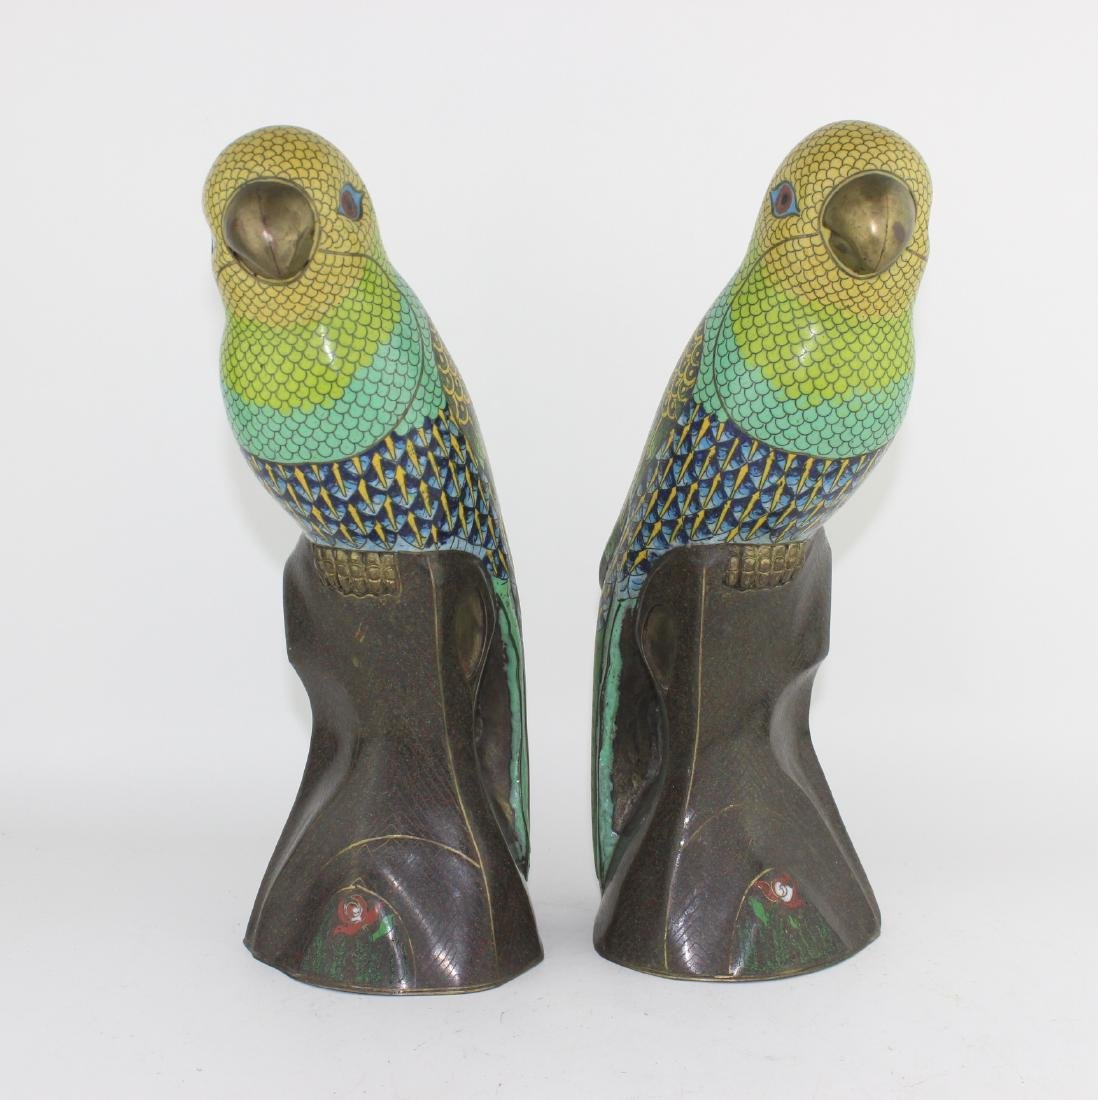 PAIR OF CHINESE CLOISONNE PARROTS